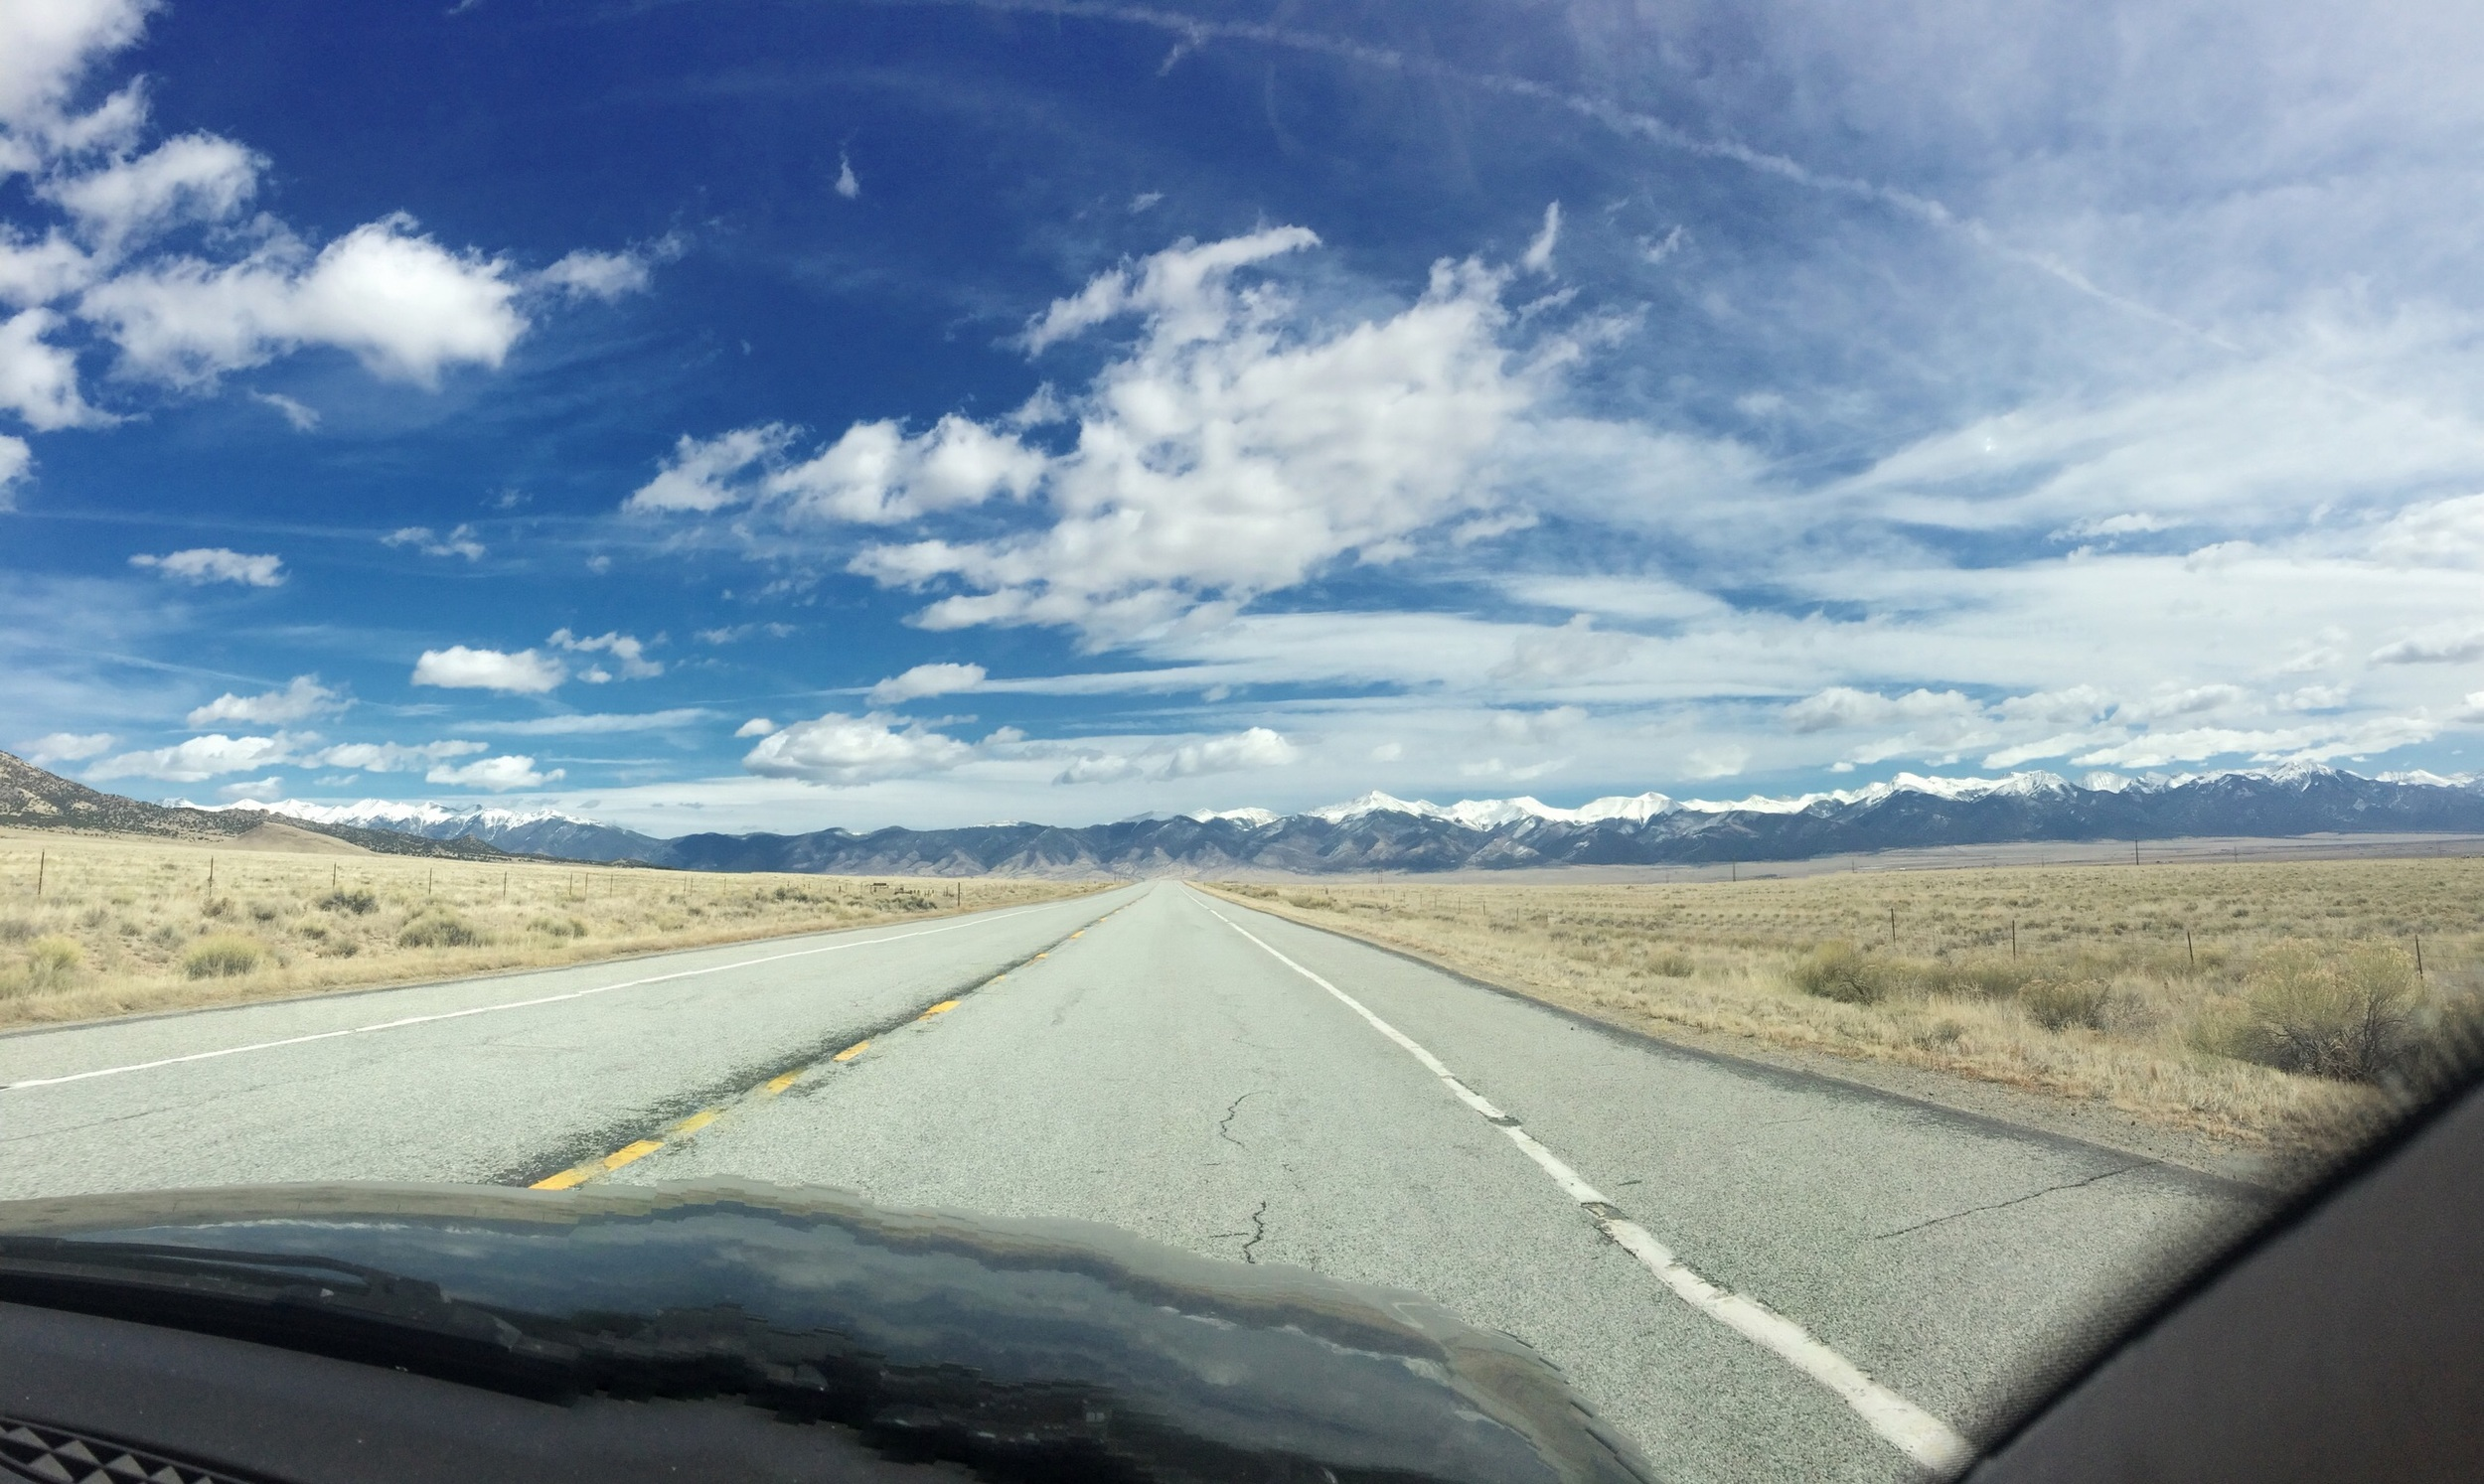 This is what happens when you take an iPhone pano in a car moving at 80 mph.